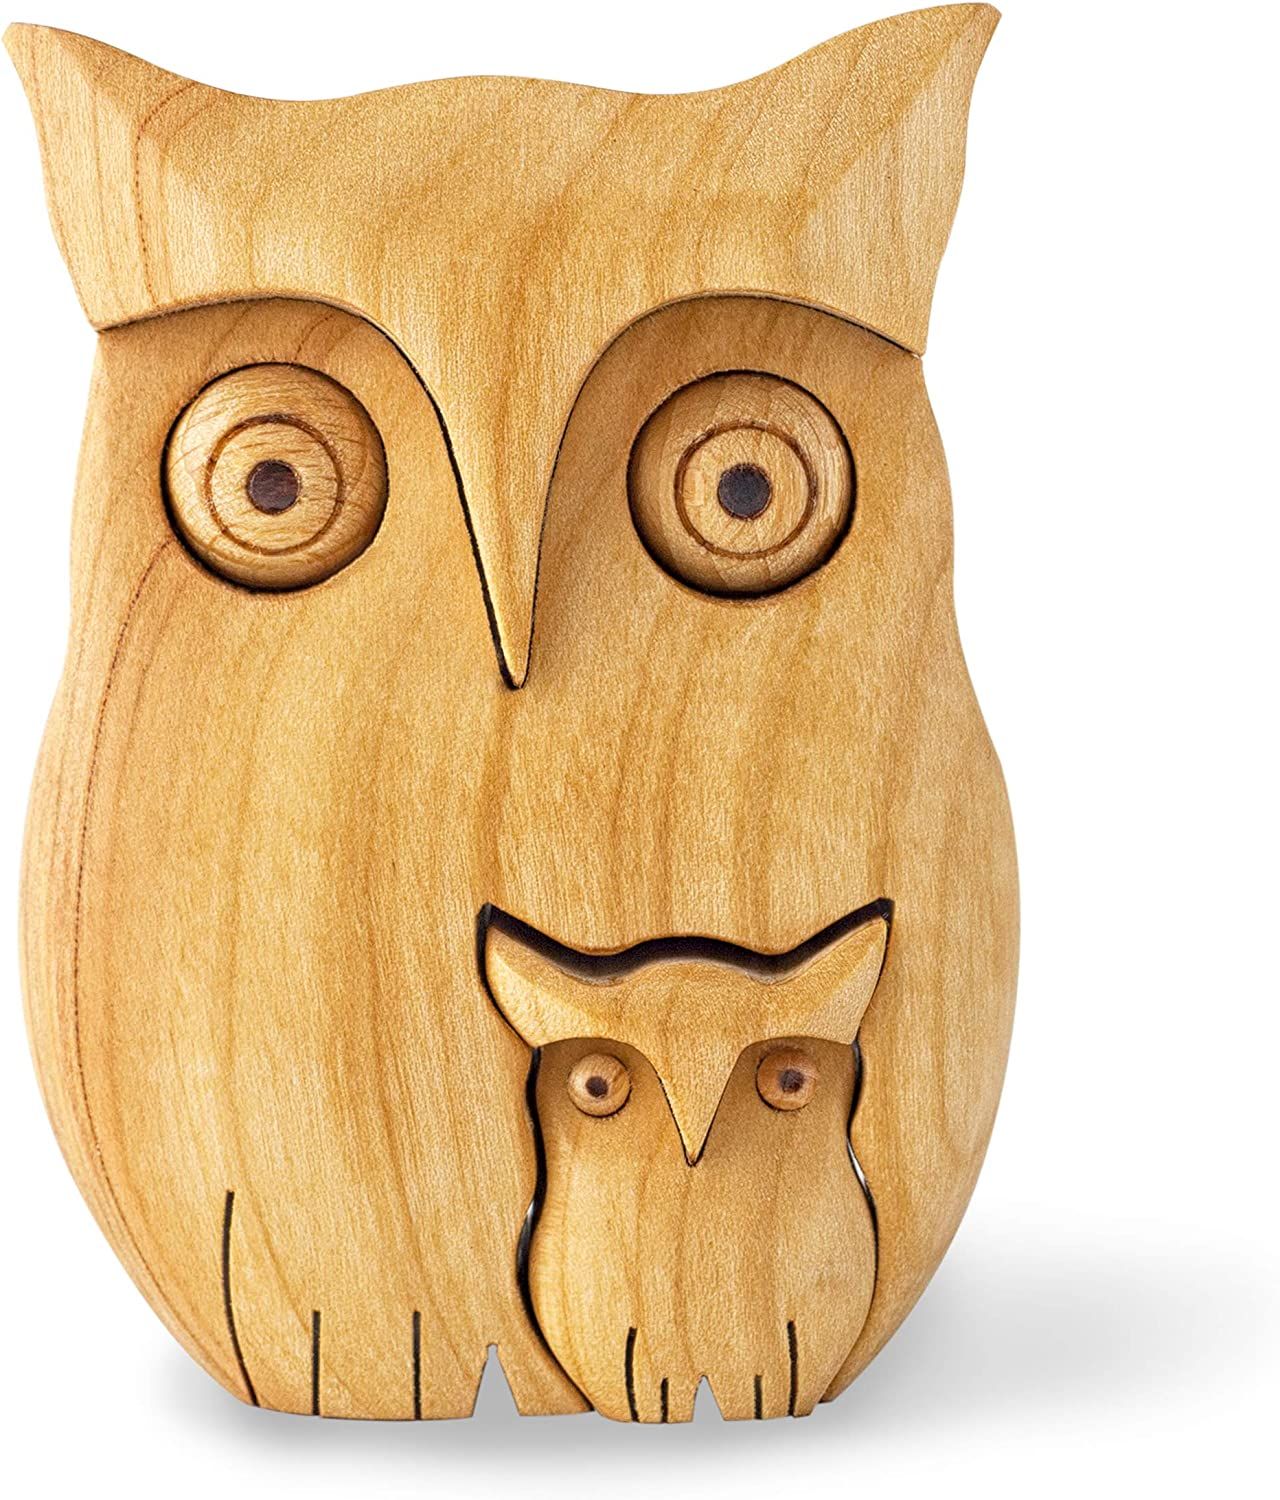 Forest Decor Wood Owl Figurine, Small Owl Decorations for Wall and Shelf, Wooden Knick Knacks, Owl Decor Handmade in Germany (Owl with Two Owls)